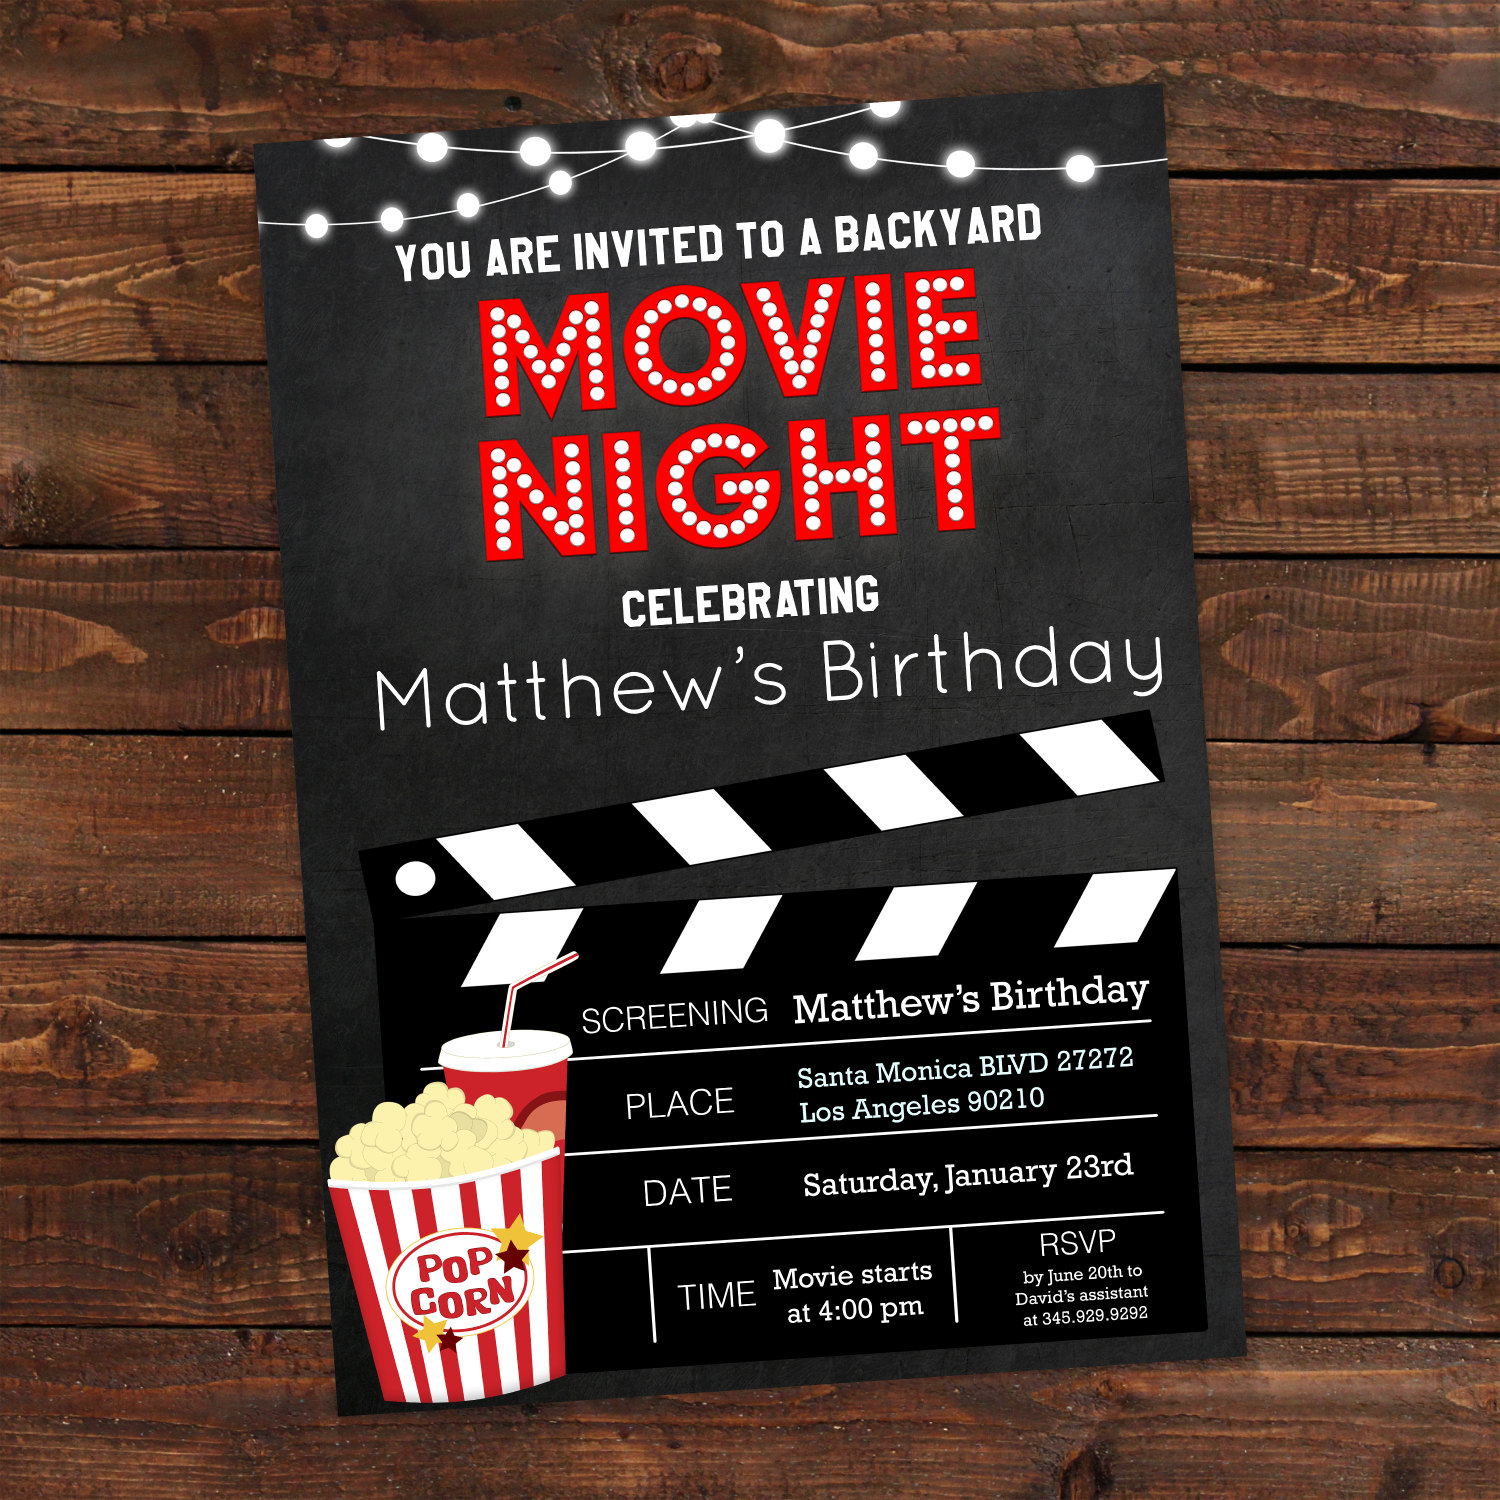 movie party invitation - Daway.dabrowa.co